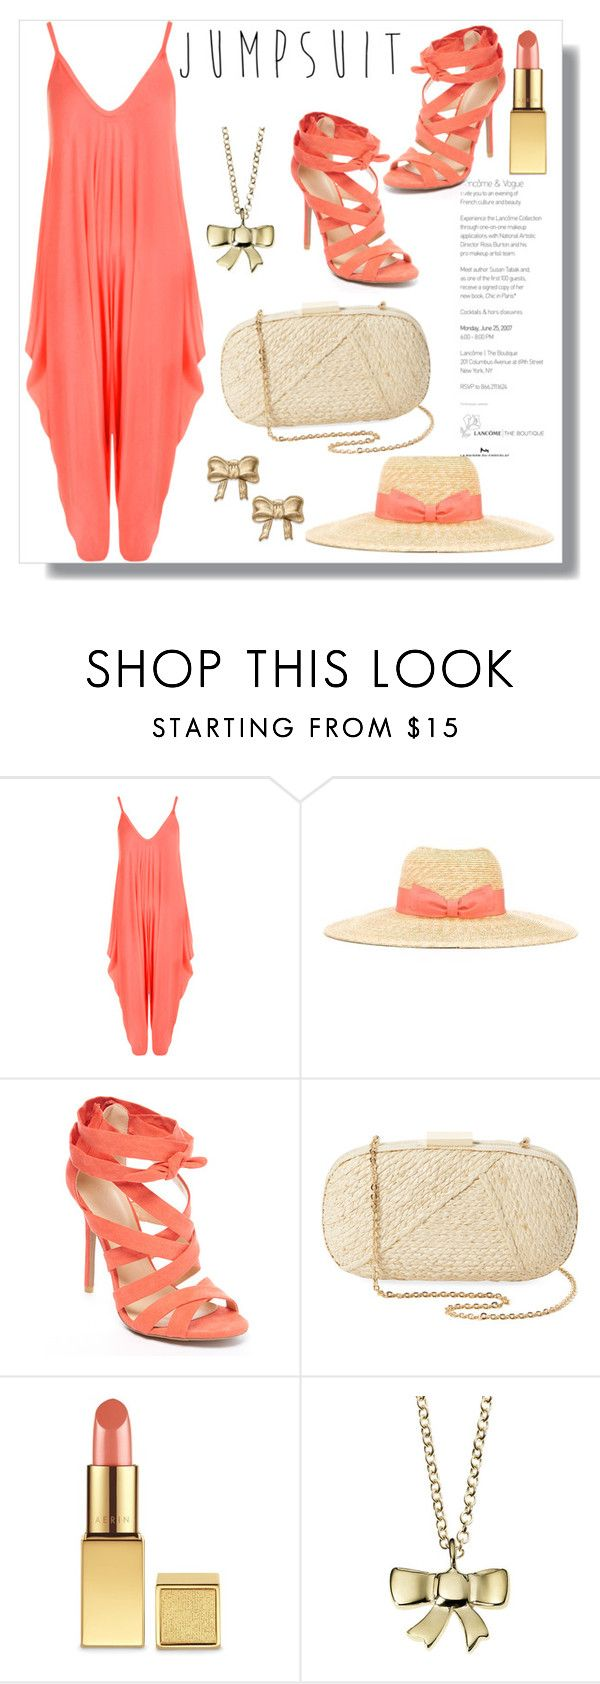 """Coral Jumpsuit"" by queenvirgo ❤ liked on Polyvore featuring WearAll, Lanvin, Wild Diva, Kayu, AERIN and Minor Obsessions"